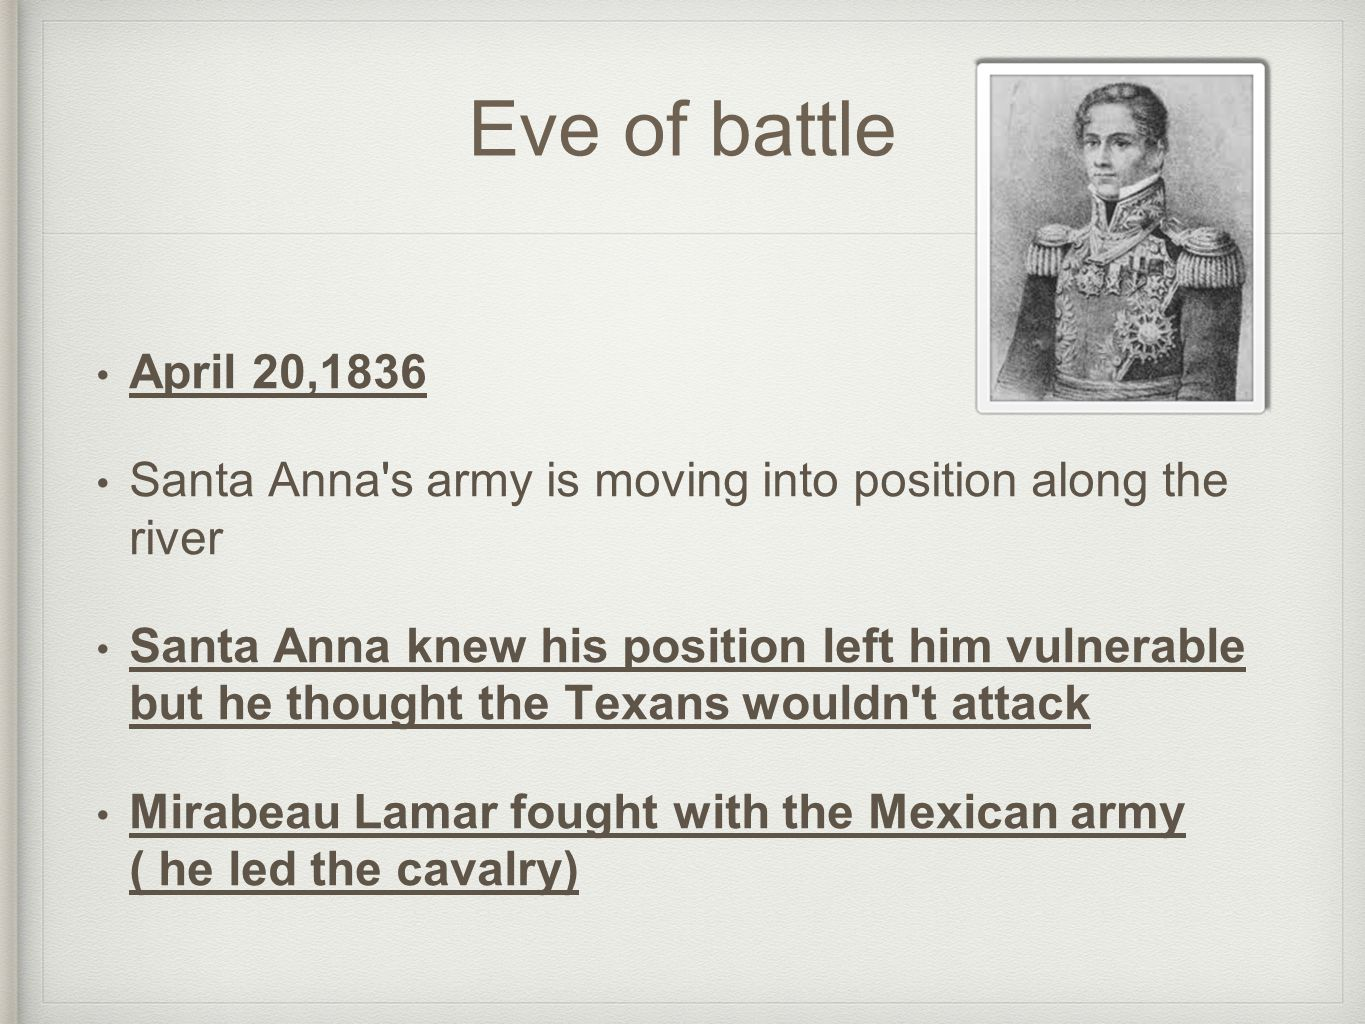 Eve of battle April 20,1836 Santa Anna s army is moving into position along the river Santa Anna knew his position left him vulnerable but he thought the Texans wouldn t attack Mirabeau Lamar fought with the Mexican army ( he led the cavalry)